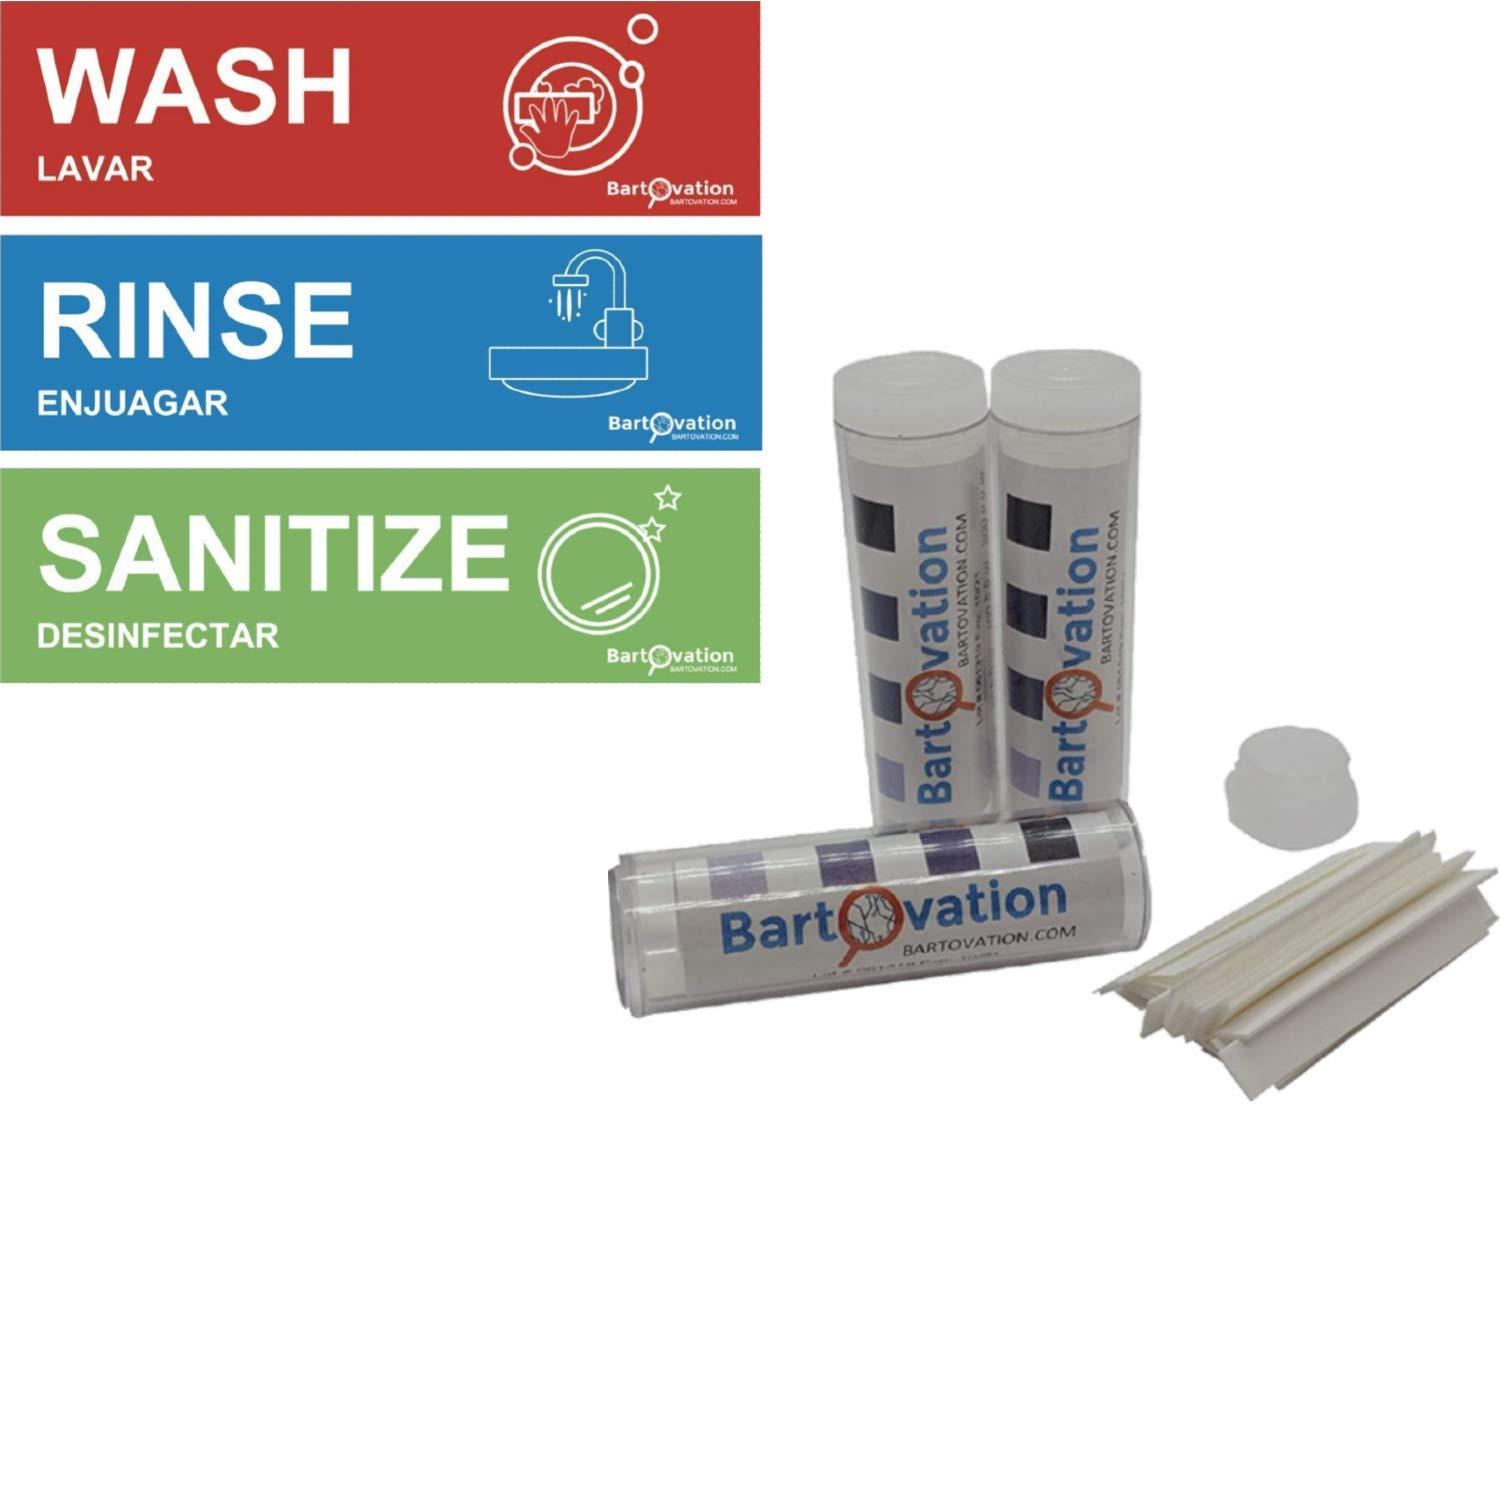 300 Chlorine Testing Strips with Rinse Wash Sanitize Heavy Duty Vinyl Labels for Food Service Compliance